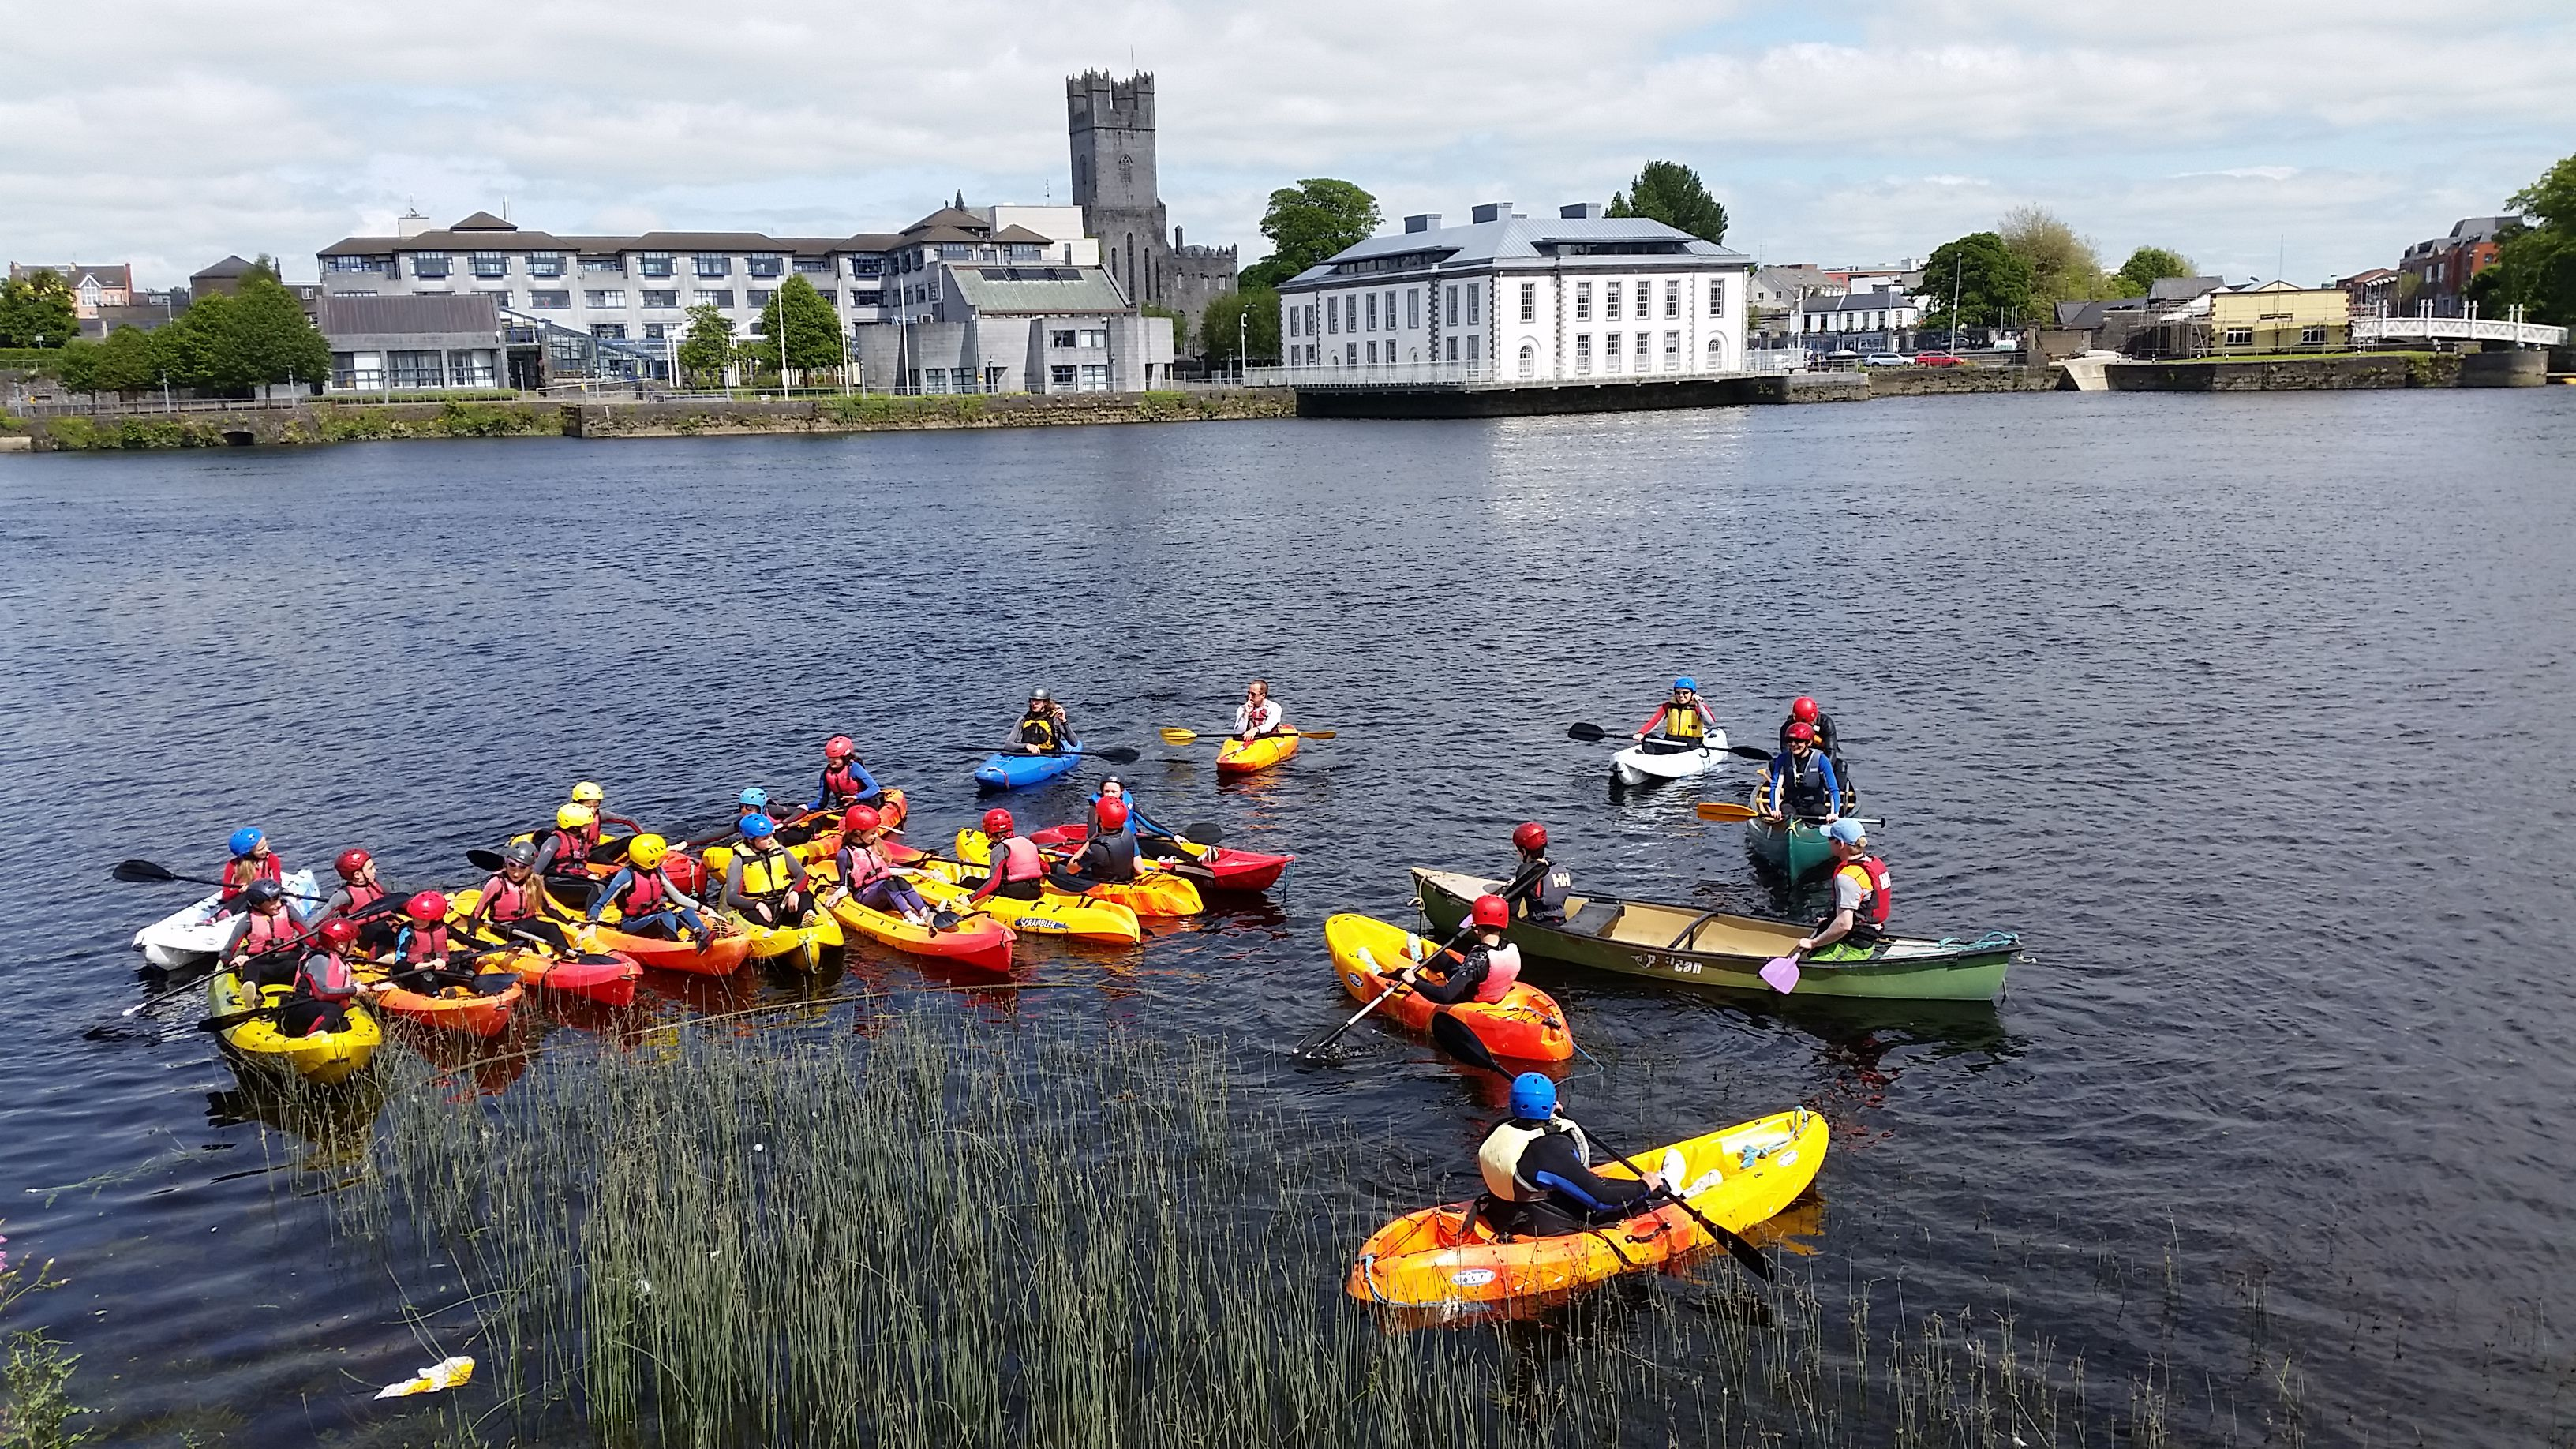 Kayaks on the Shannon river with Limerick in the background